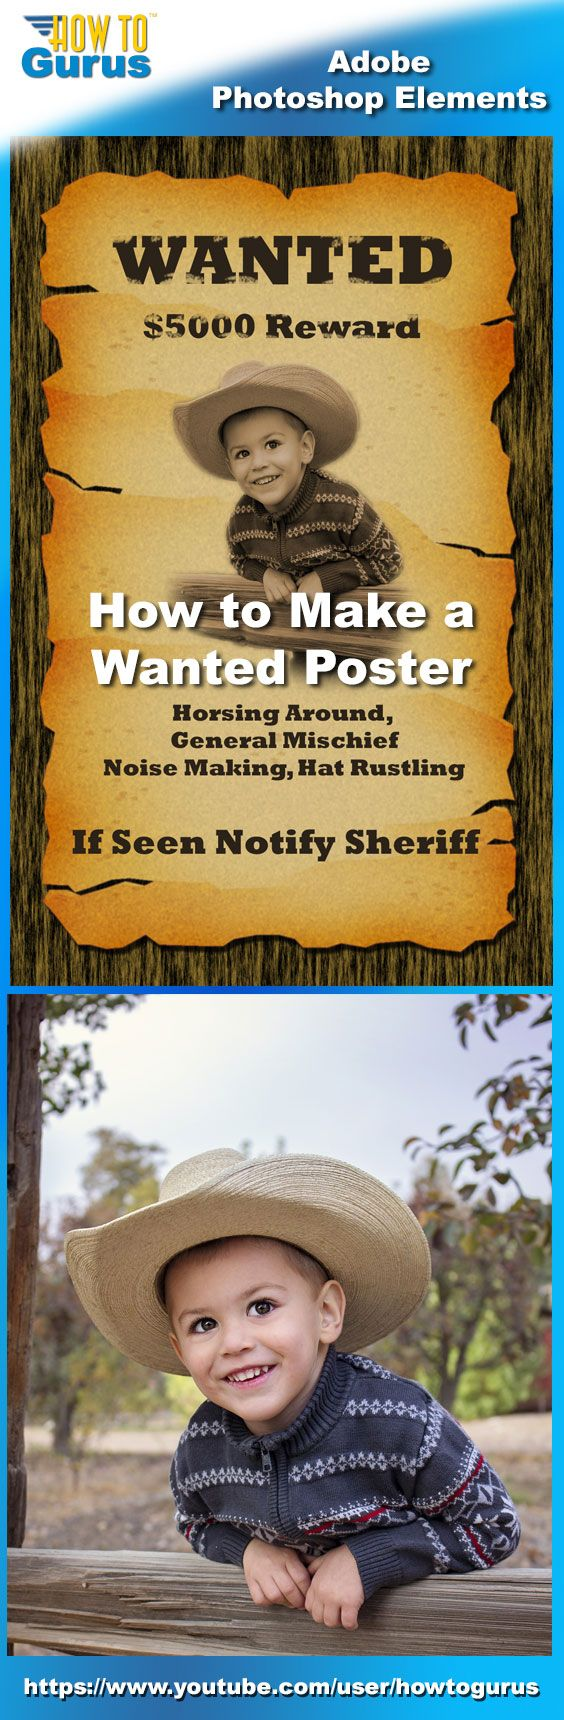 143 best adobe photoshop elements tutorials for 2018 15 14 images how to make a wanted poster from a photograph in adobe photoshop elements 15 14 13 baditri Choice Image